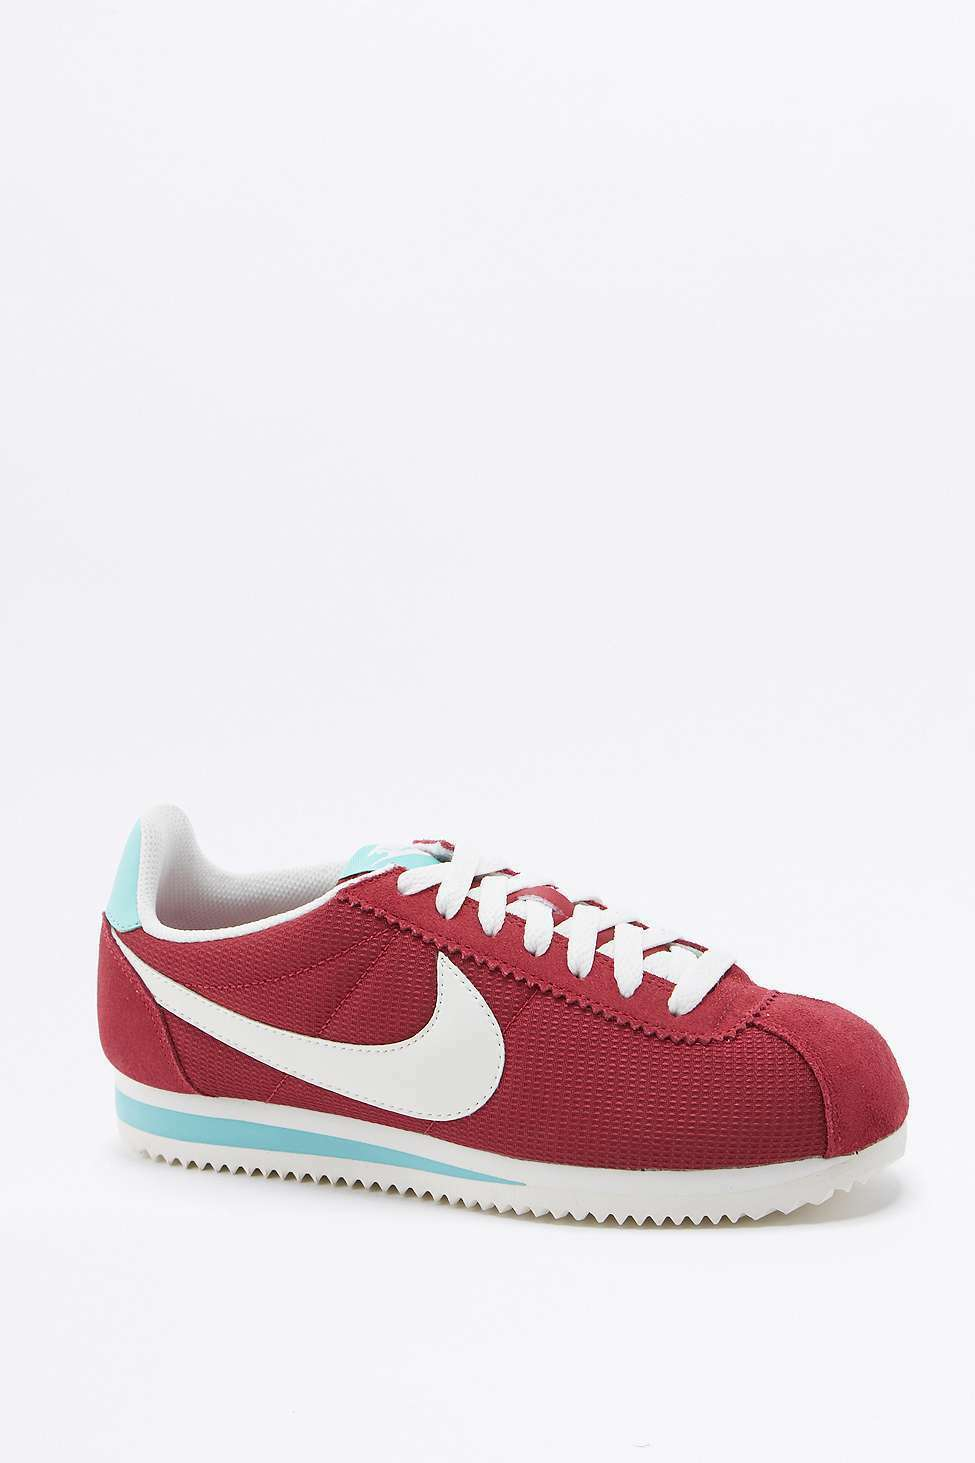 Nike Wmns Classic Cortez Txt Trainers Sneakers - ROT - UK 6/EU 40 -   New